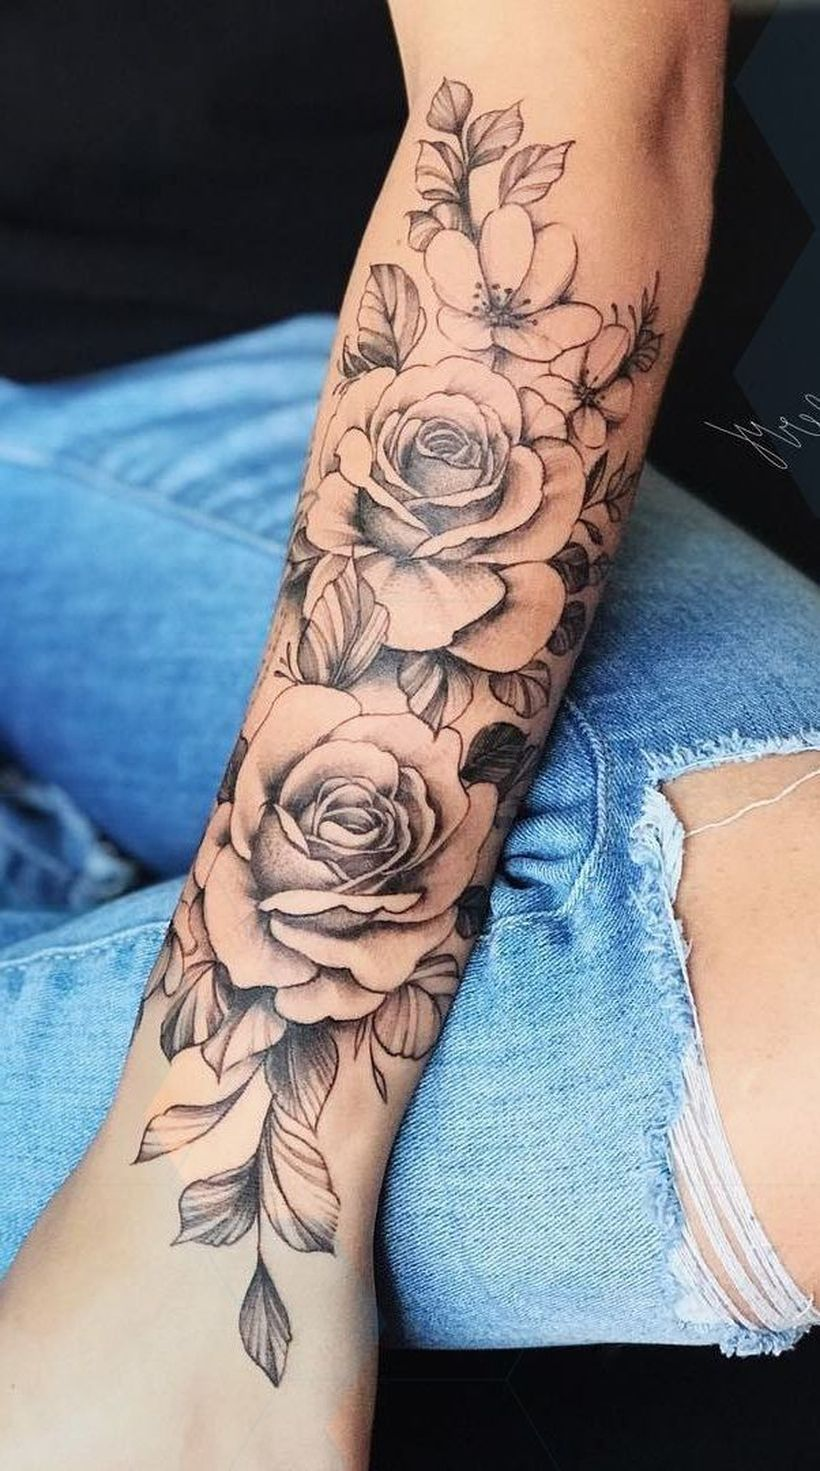 59 Most Beautiful Arm Tattoo For Women Ideas Arm Tattoos For